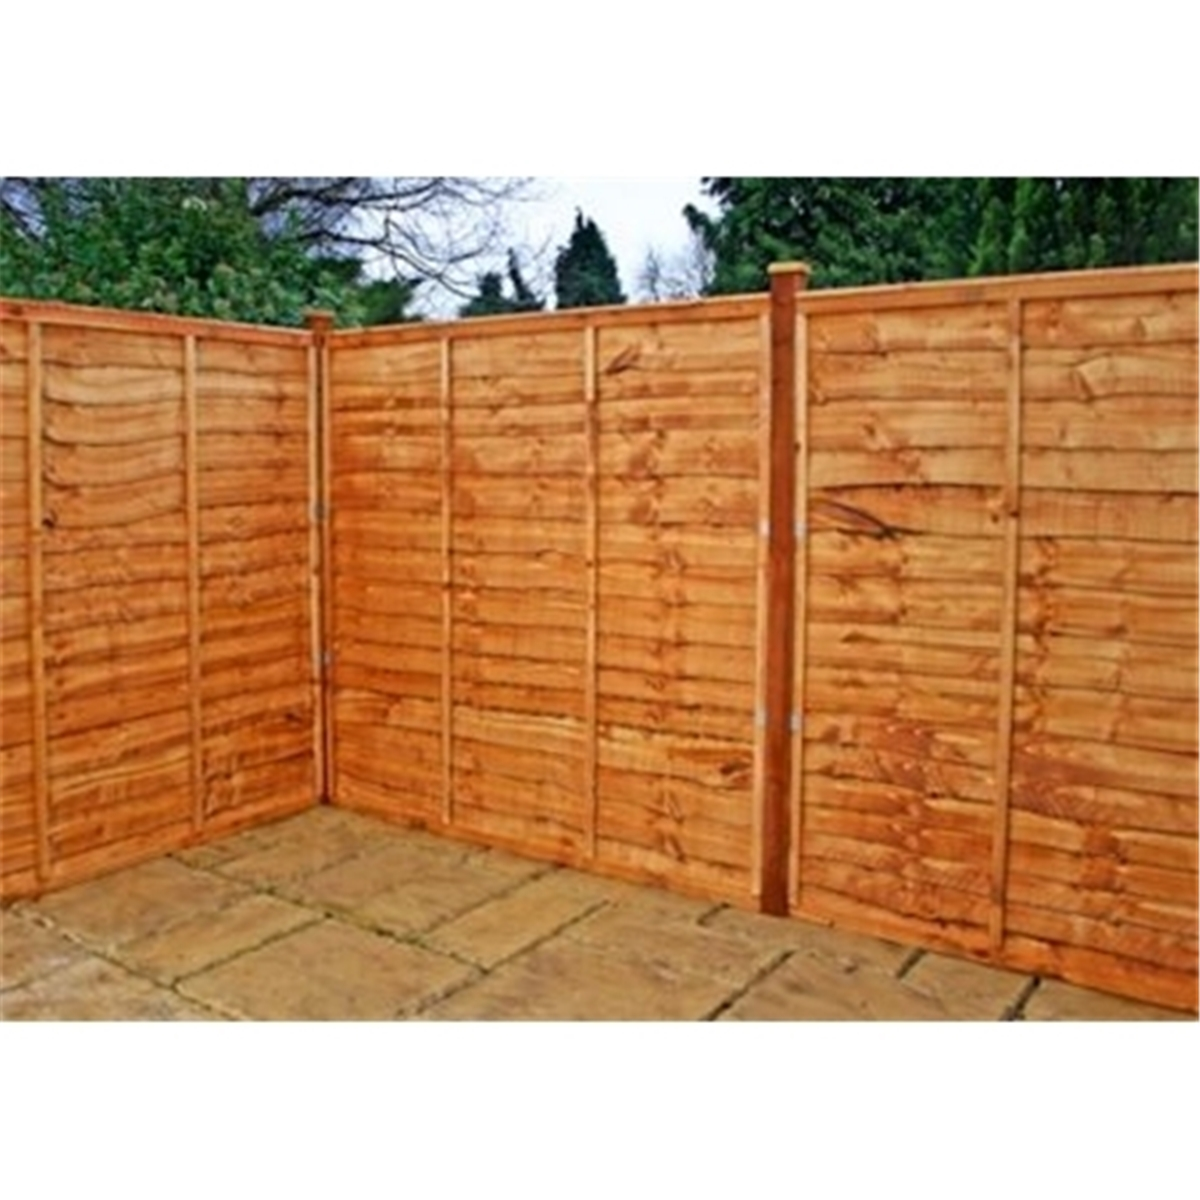 Very Impressive portraiture of ft x 8 ft Solid Tongue and Groove Vinyl Fence Panel (White with #974510 color and 1200x1200 pixels